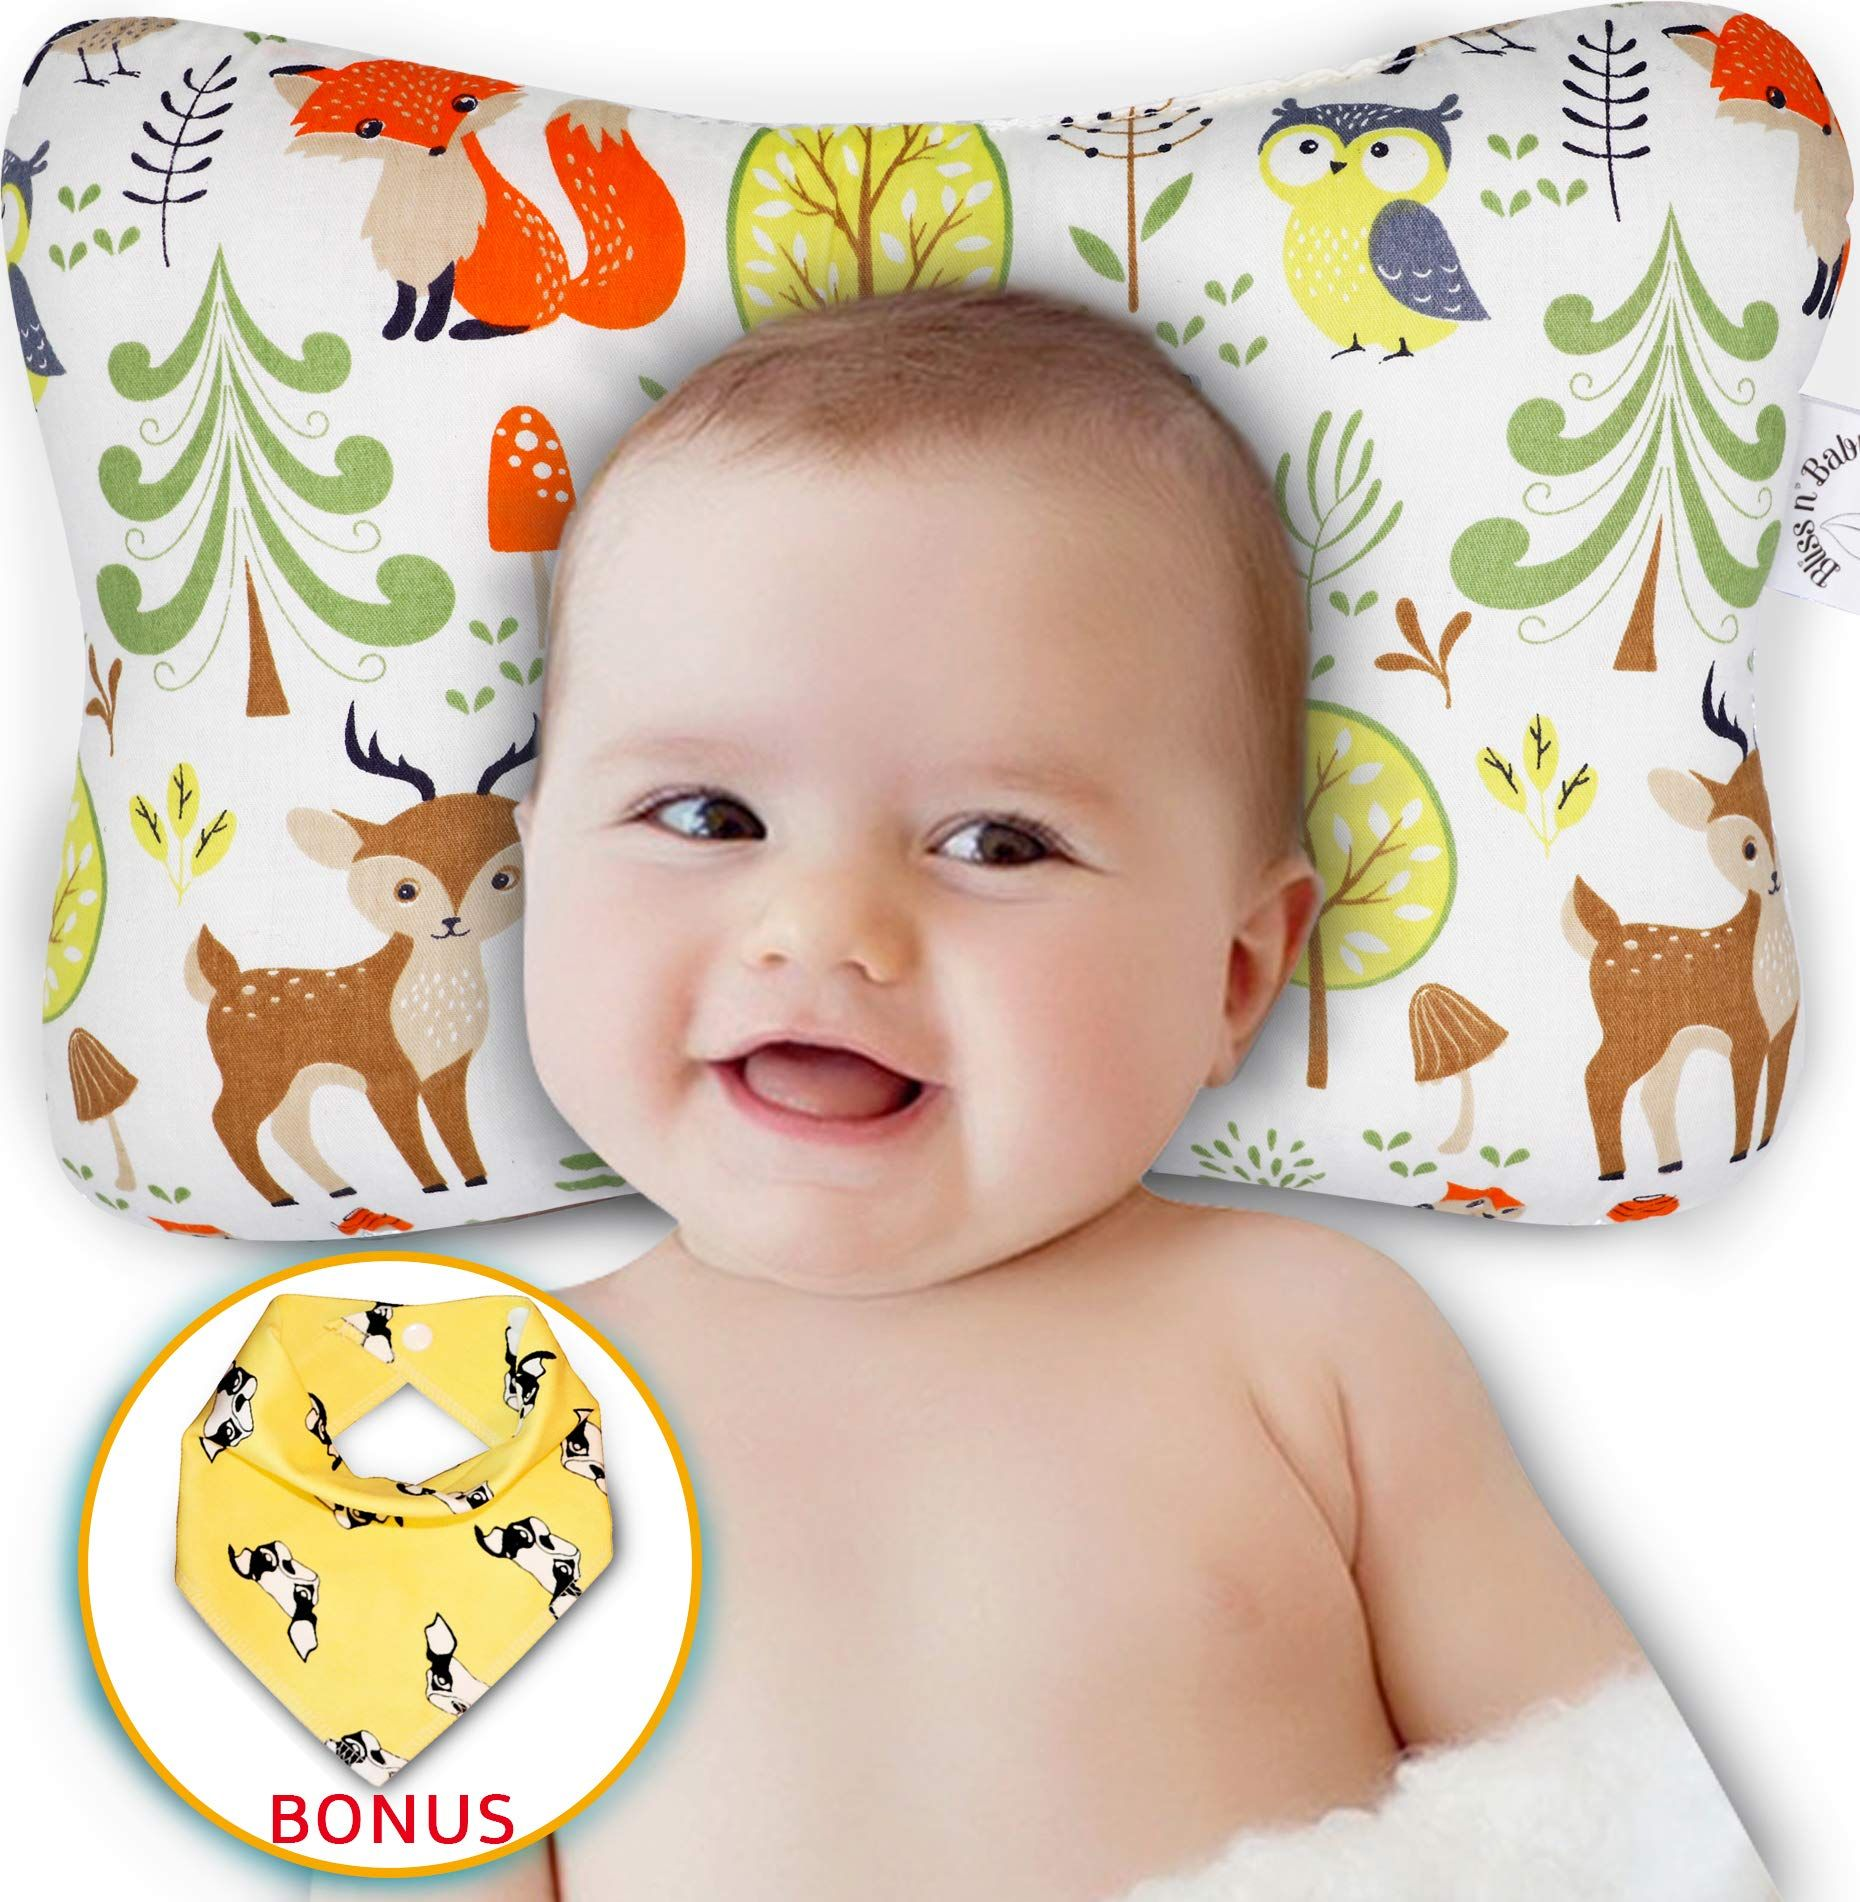 Baby Head Shaping Pillow Flat Head And Reflux Prevention For Newborn Infants Organic Cotton Hypoallergenic 3d Brea In 2020 Baby Pillows Baby Head Best Baby Cribs